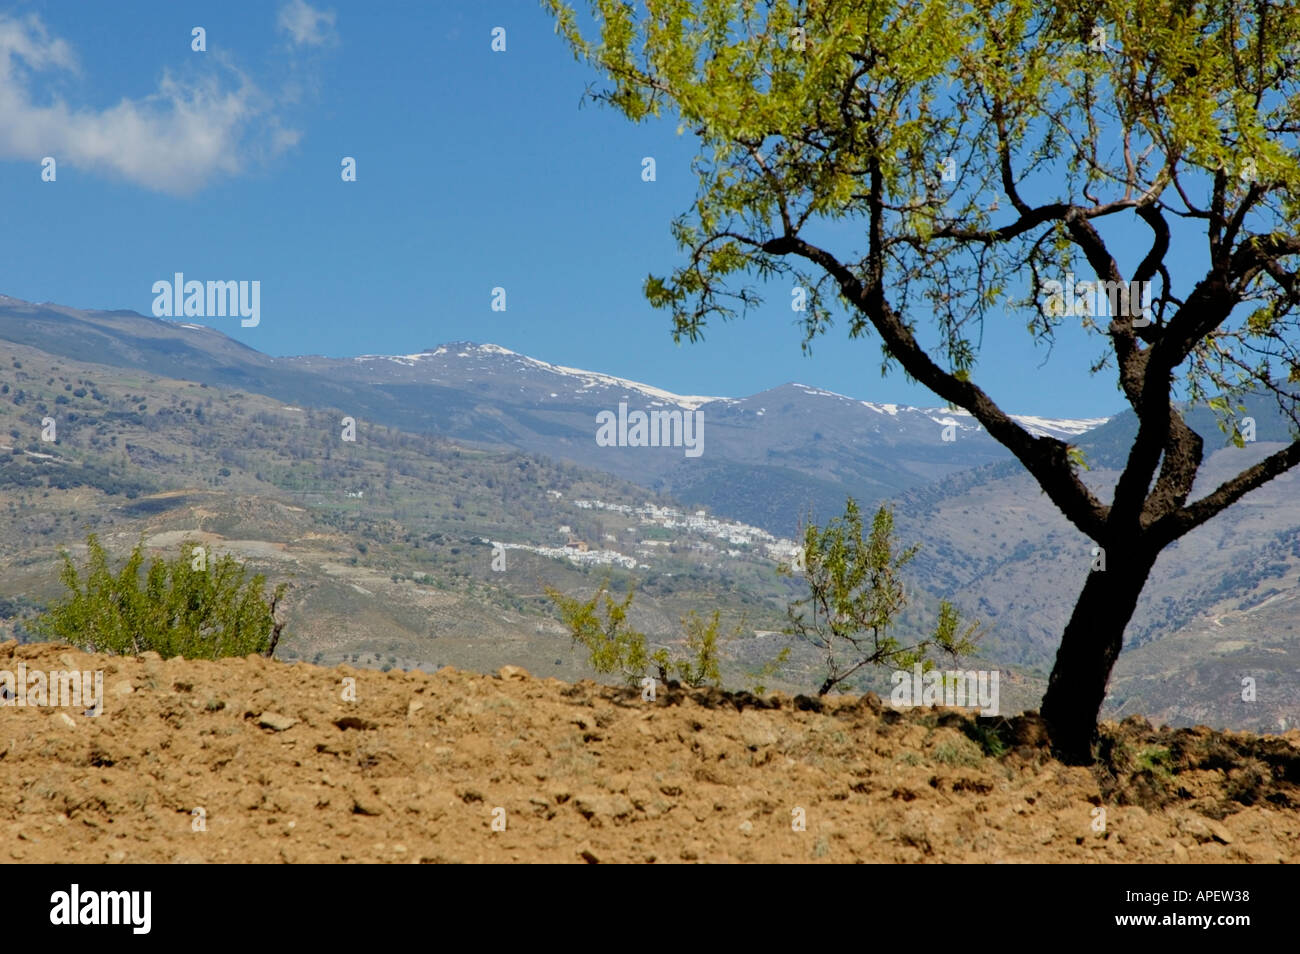 The Alpujarras Mountains, Andalucia, Spain - Stock Image